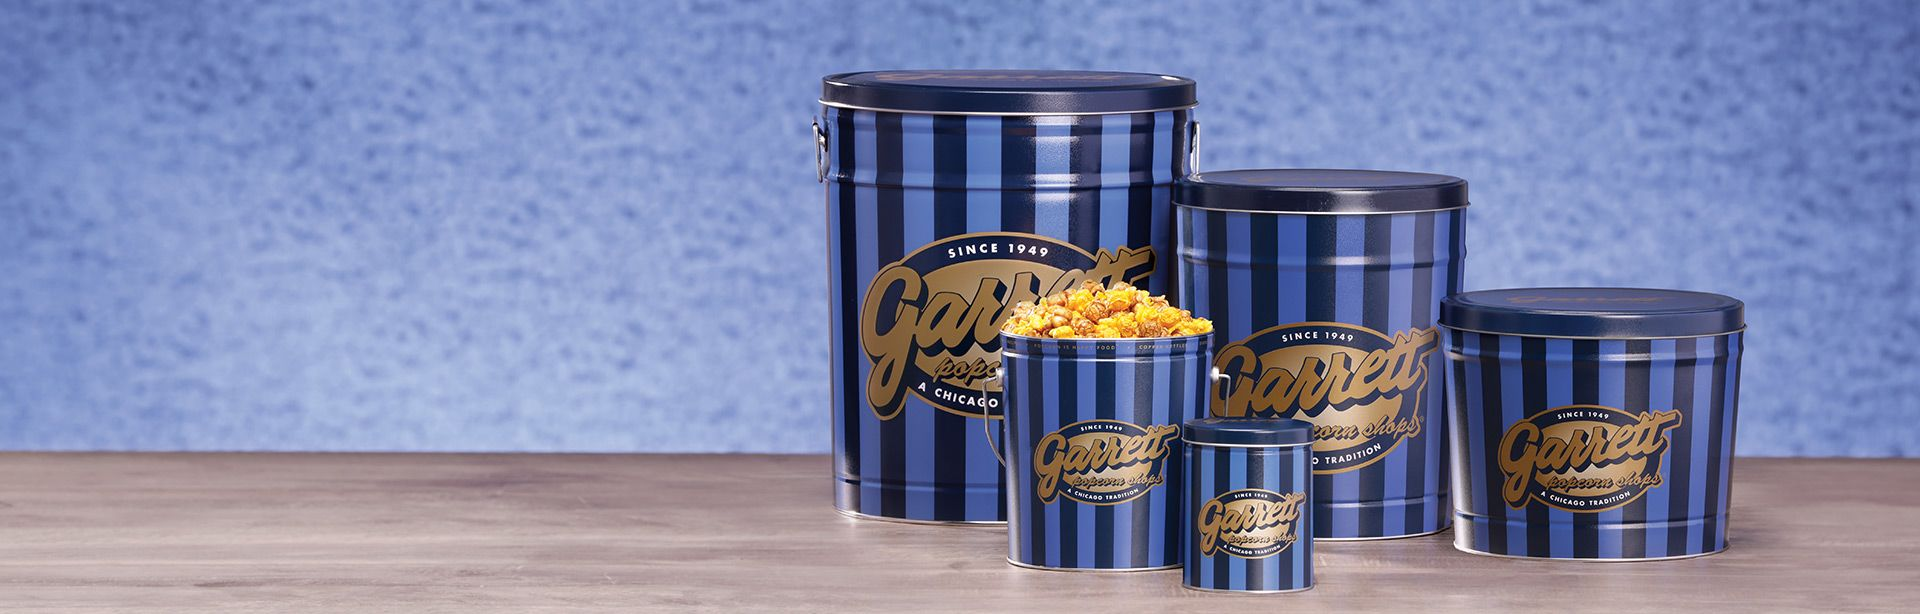 Garrett Popcorn Shops   Gourmet Popcorn Made in Chicago eae9d794b8